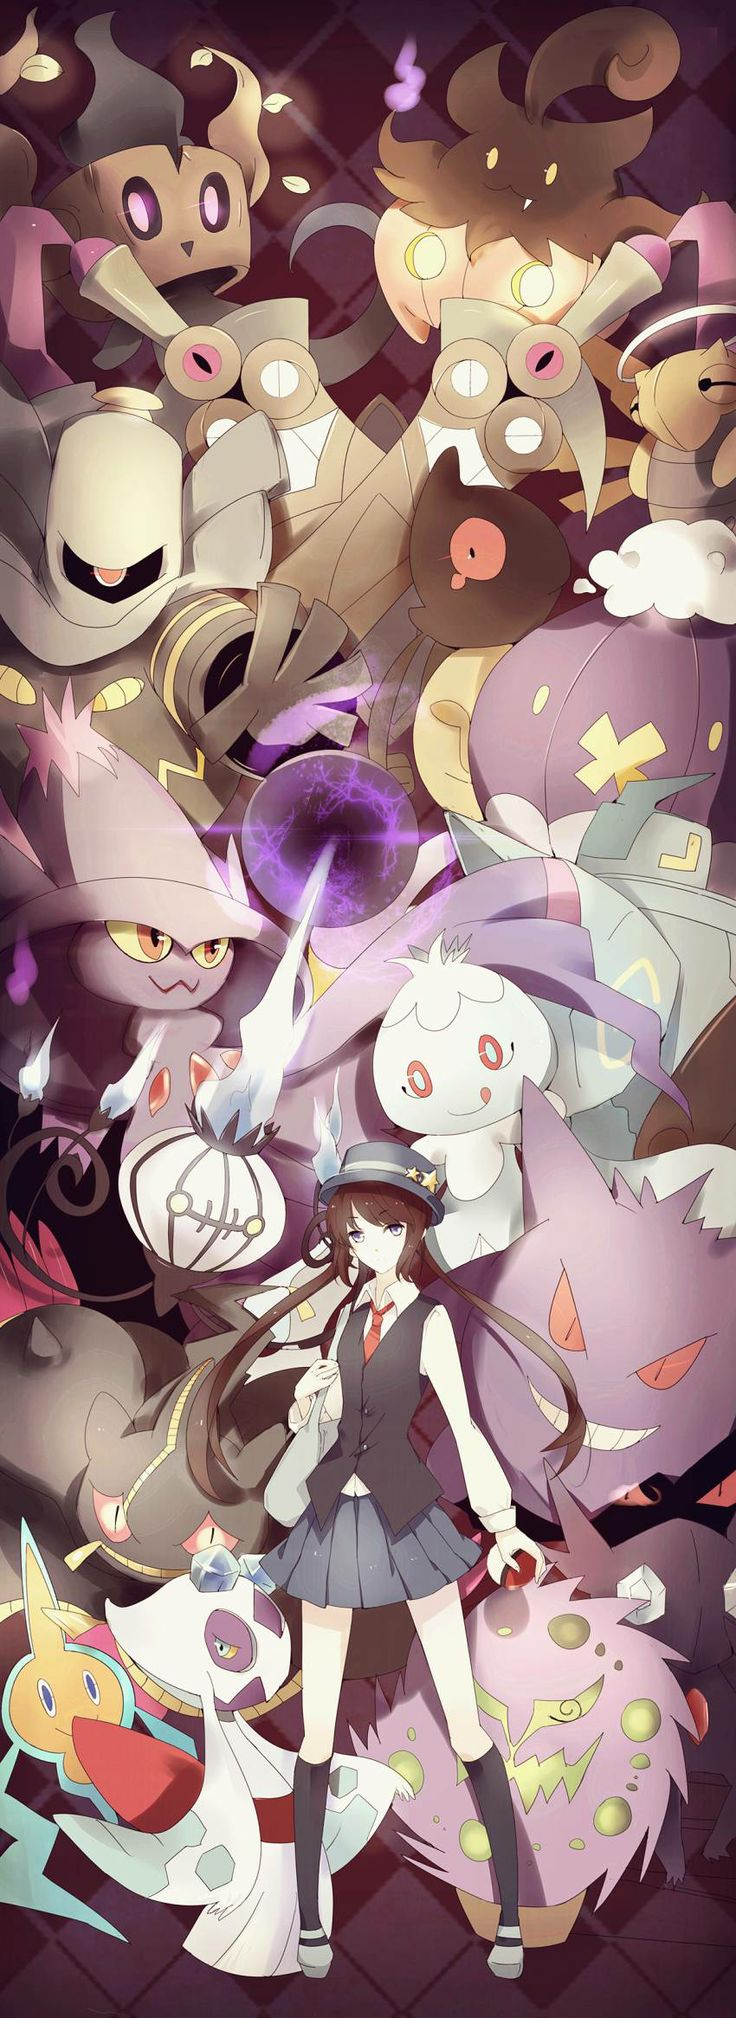 Ghost Pokemon!